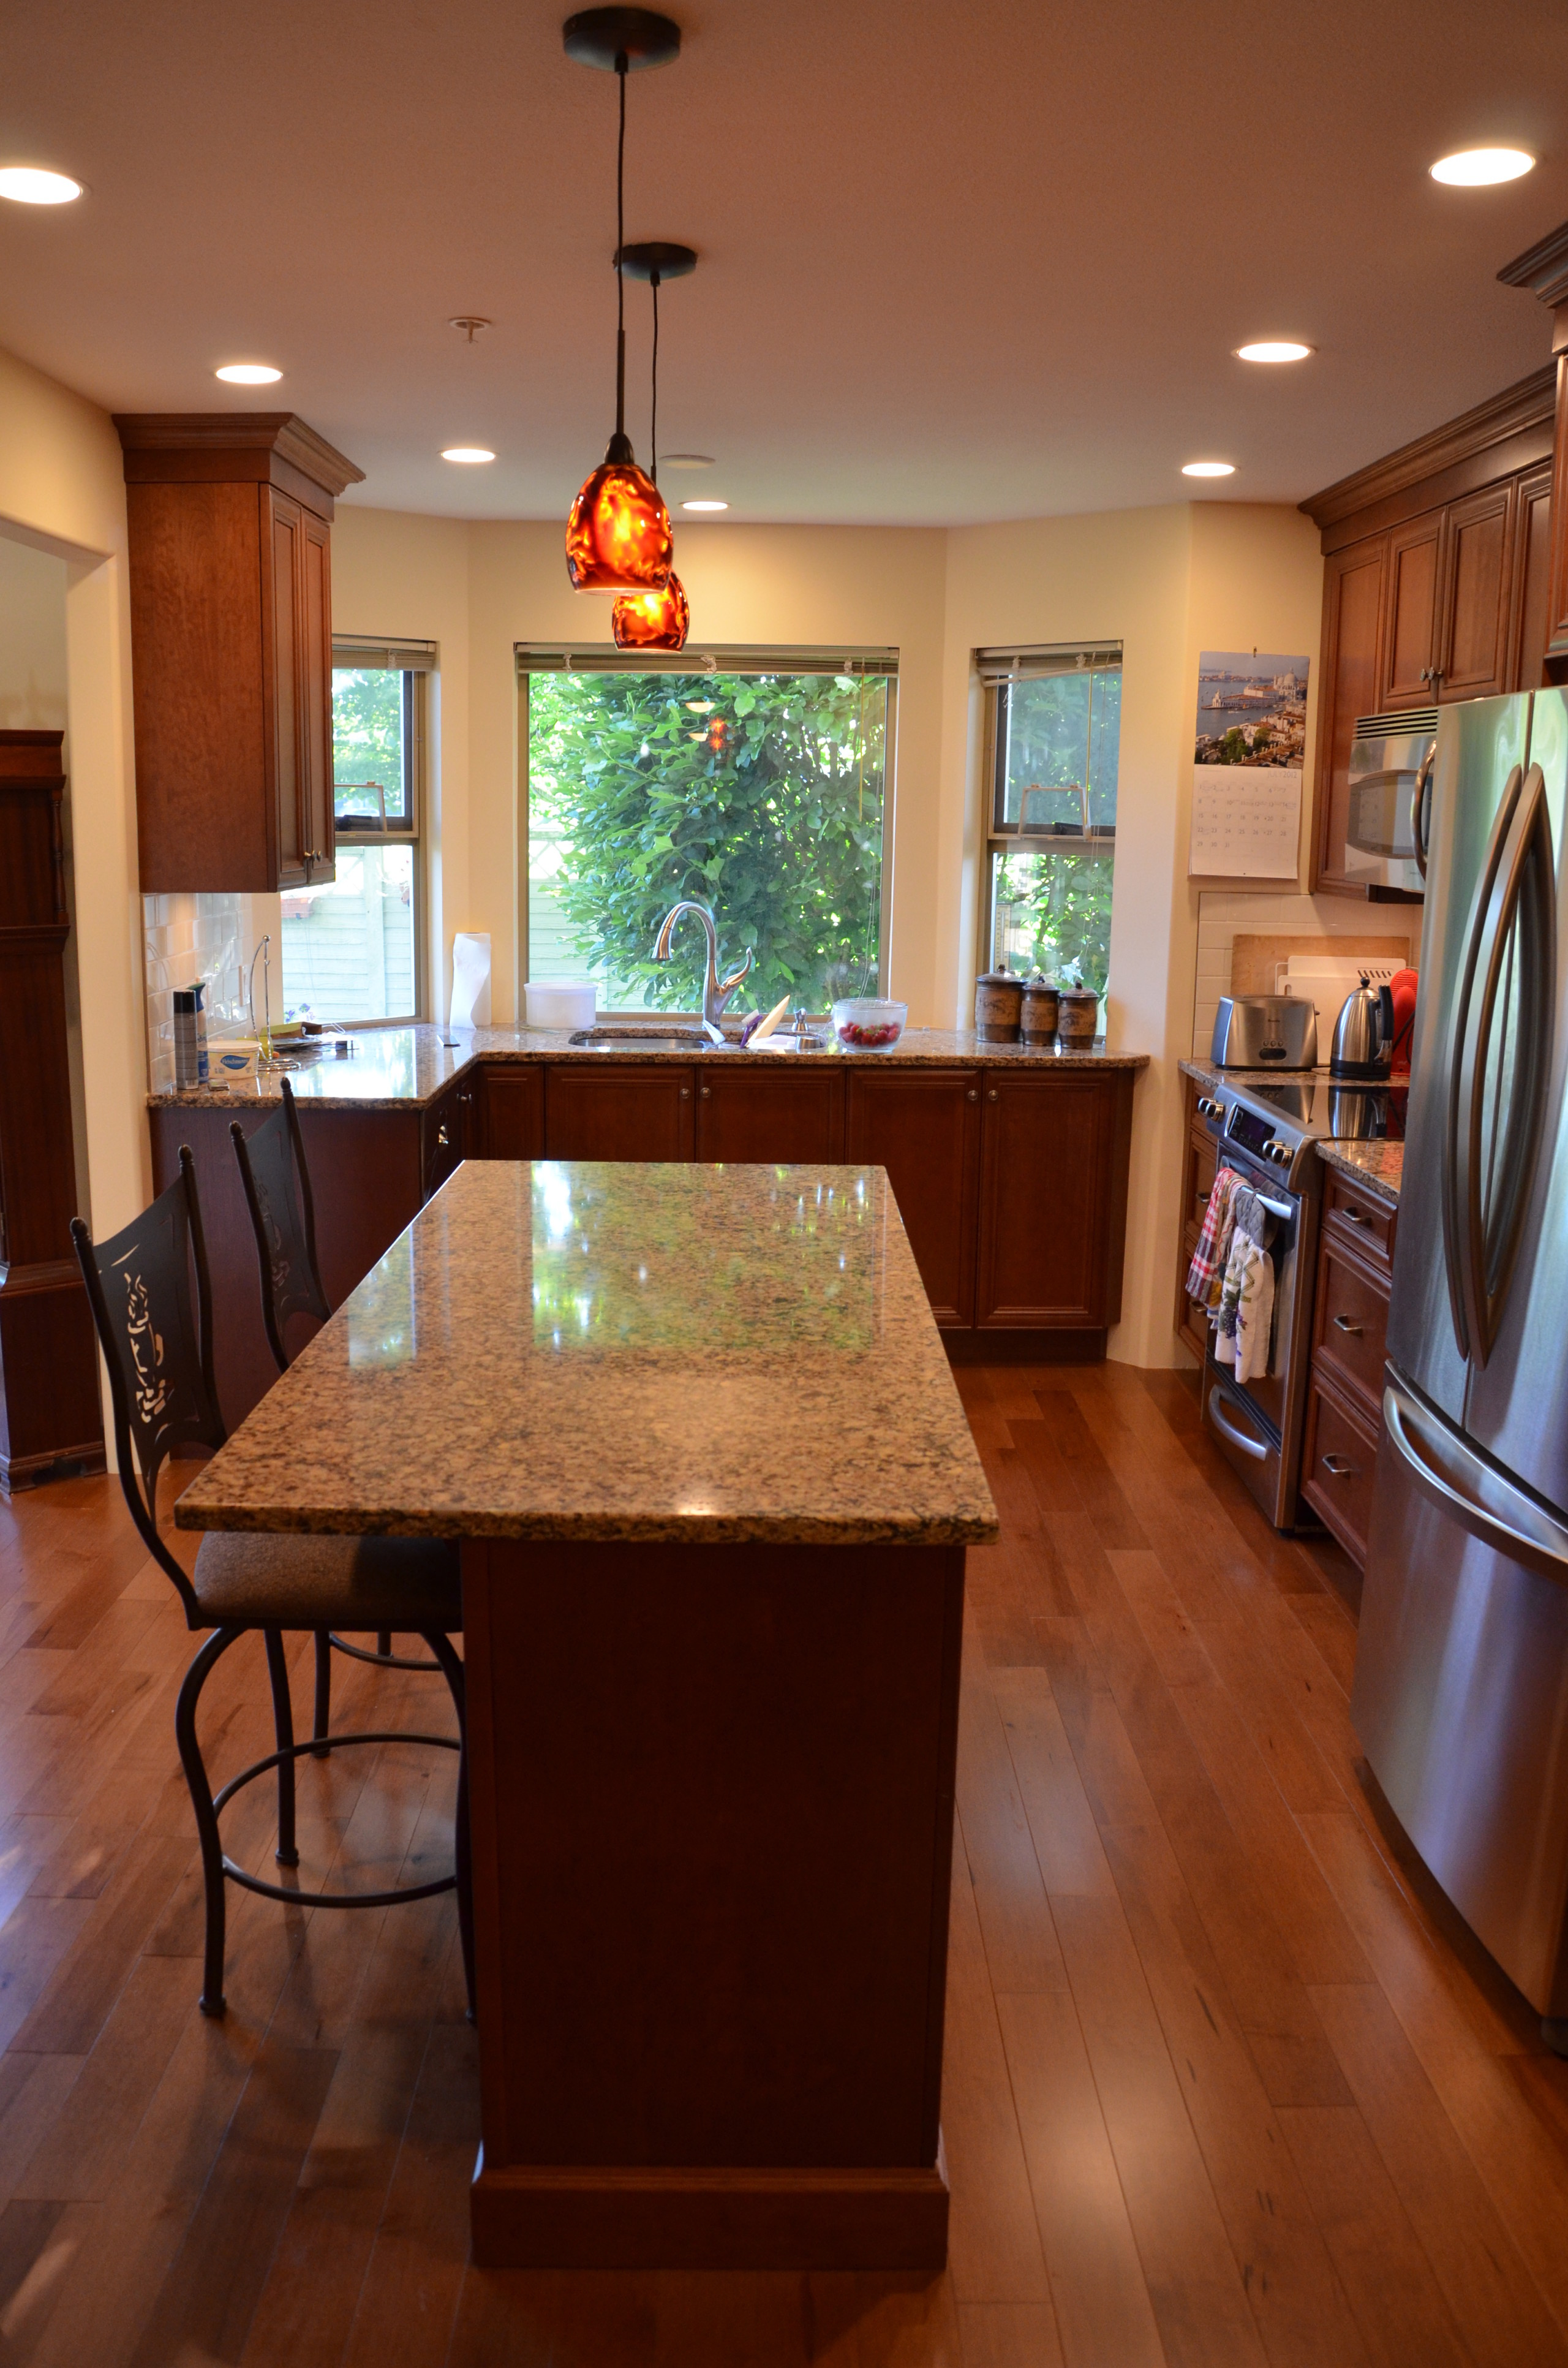 oak island in kitchen